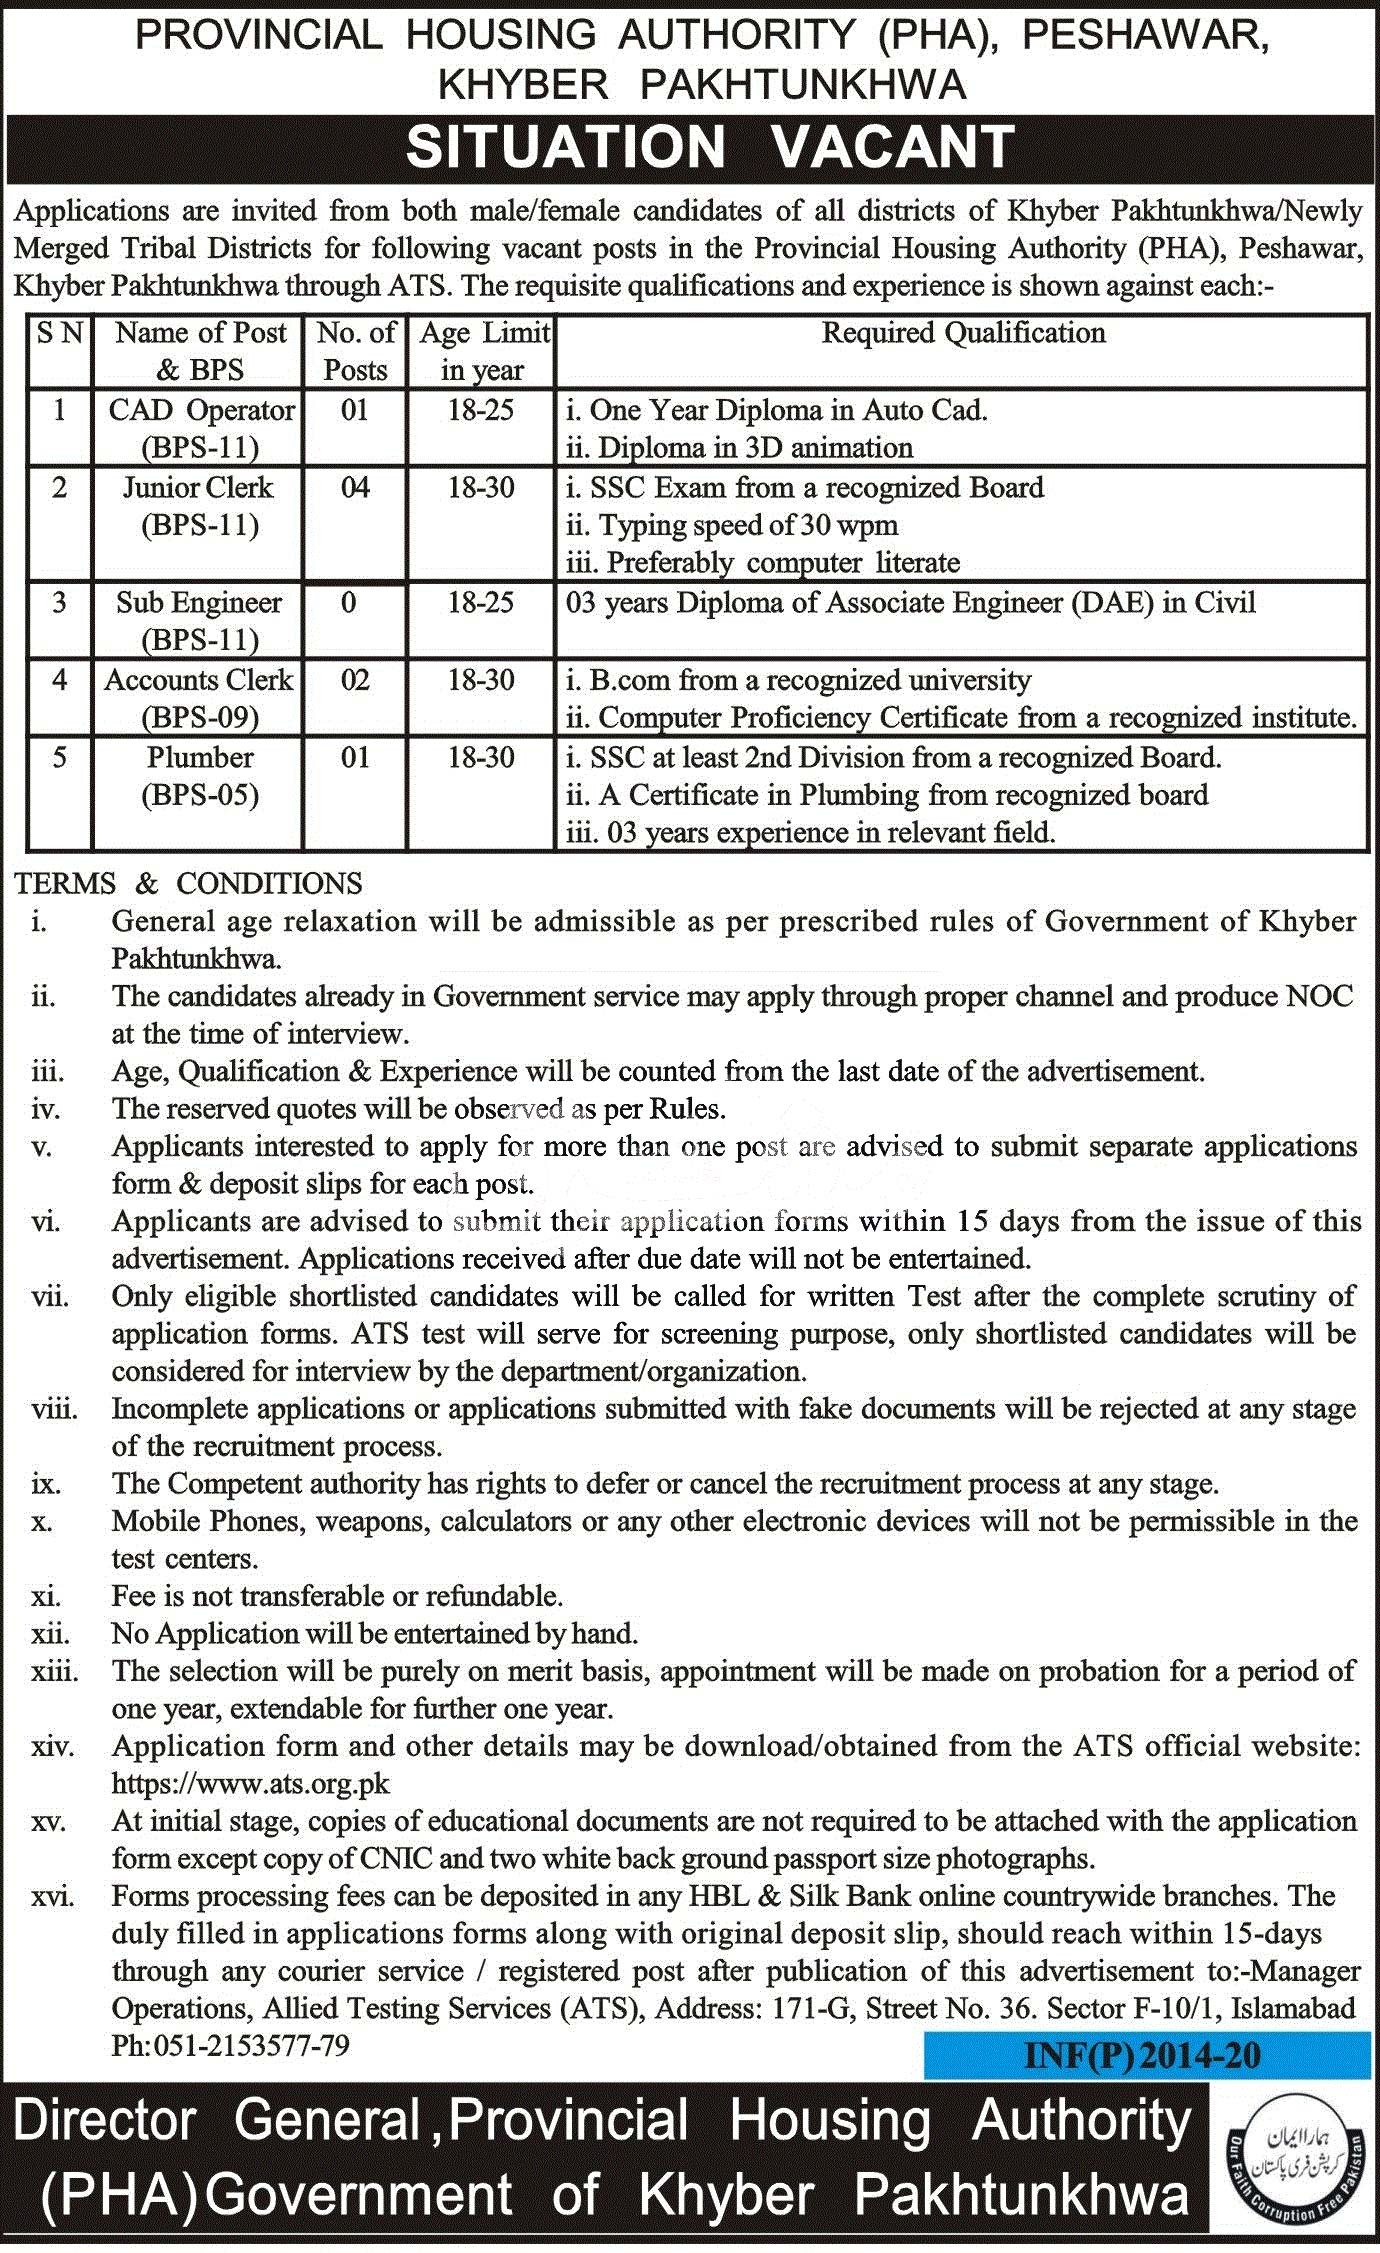 Provincial Housing Authority Ph Peshawar Jobs 2020 Latest